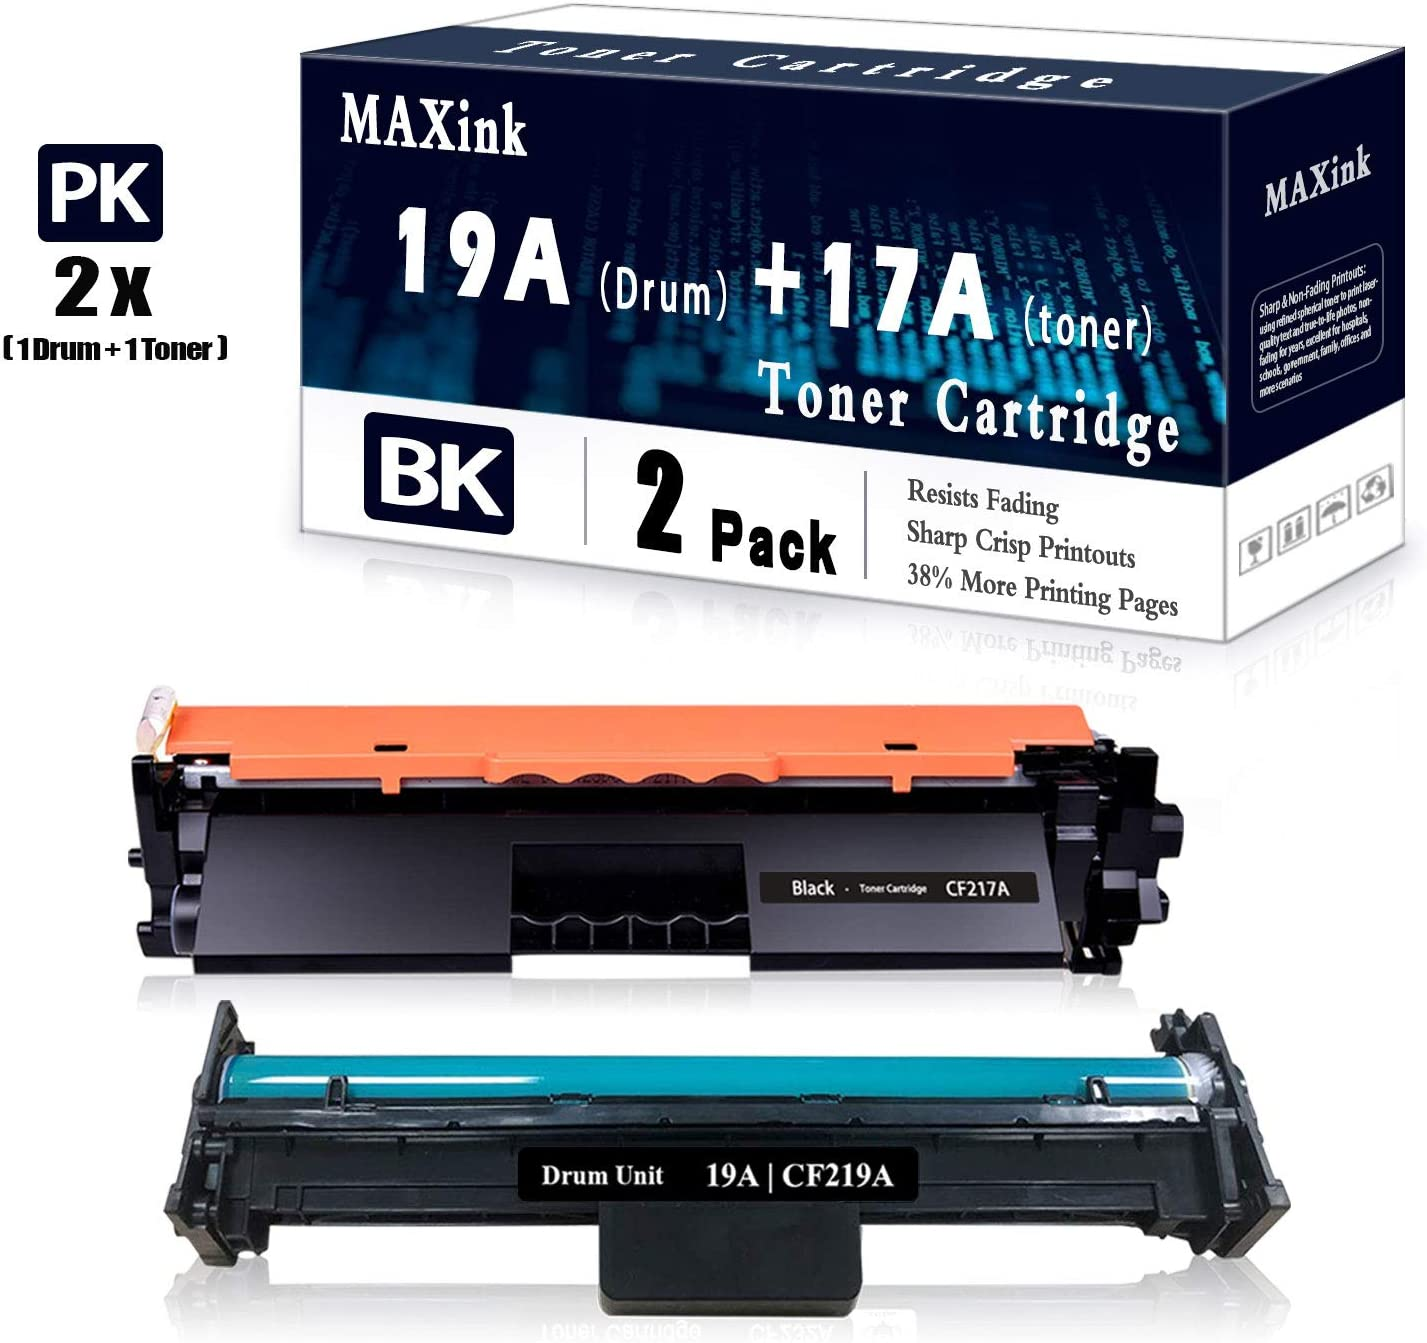 2 Pack 1 Black 17A Toner + 1 Pack 19A Drum Cartridge Replacement for HP Laserjet Pro MFP M130a M130nw M130fn M130fw M102a M130fw Printer